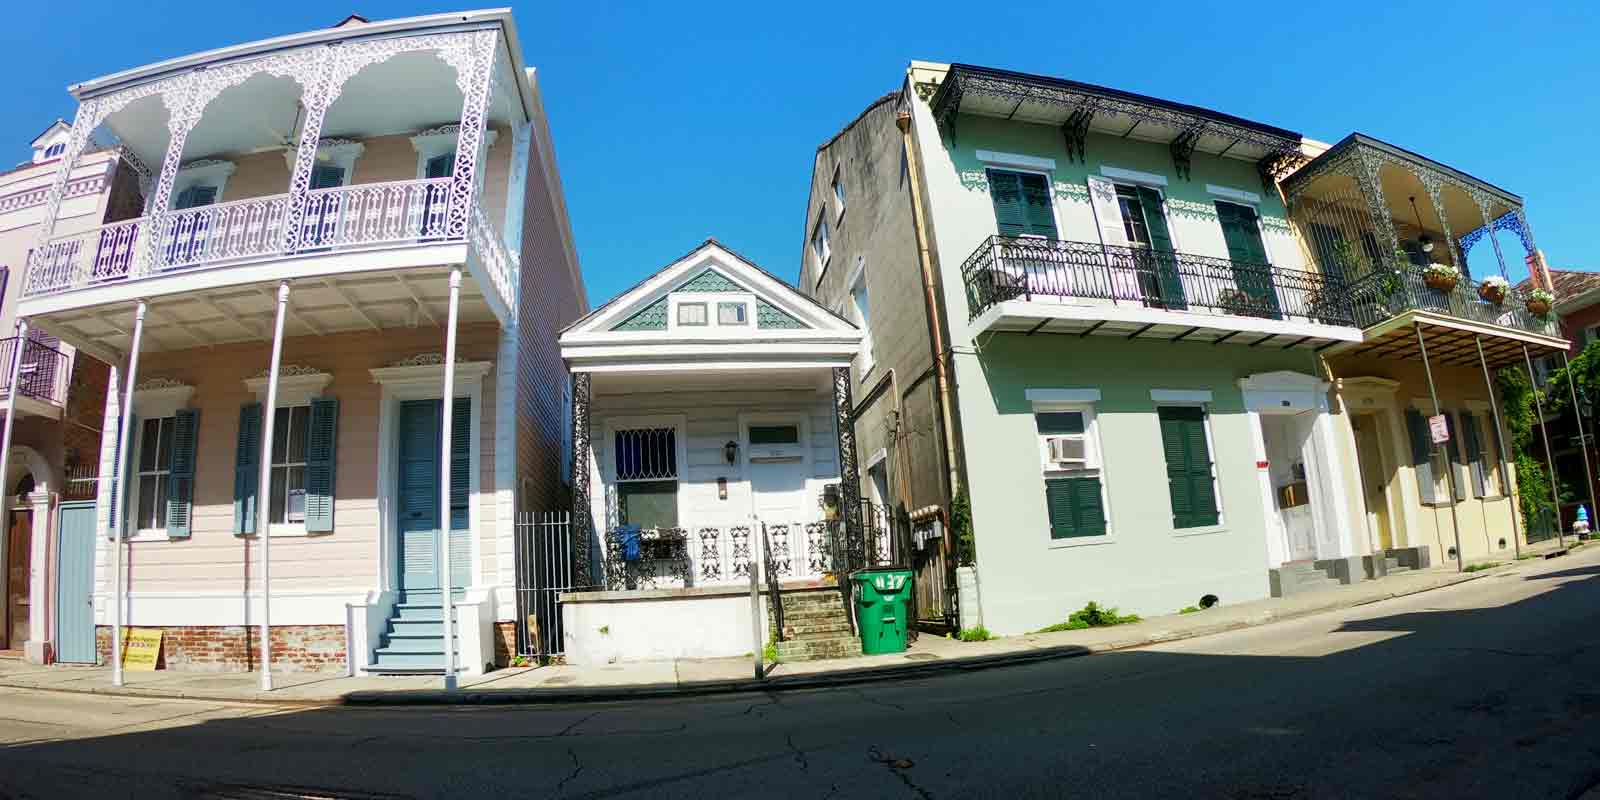 Admire the blend of architectural styles in New Orleans' French Quarter.